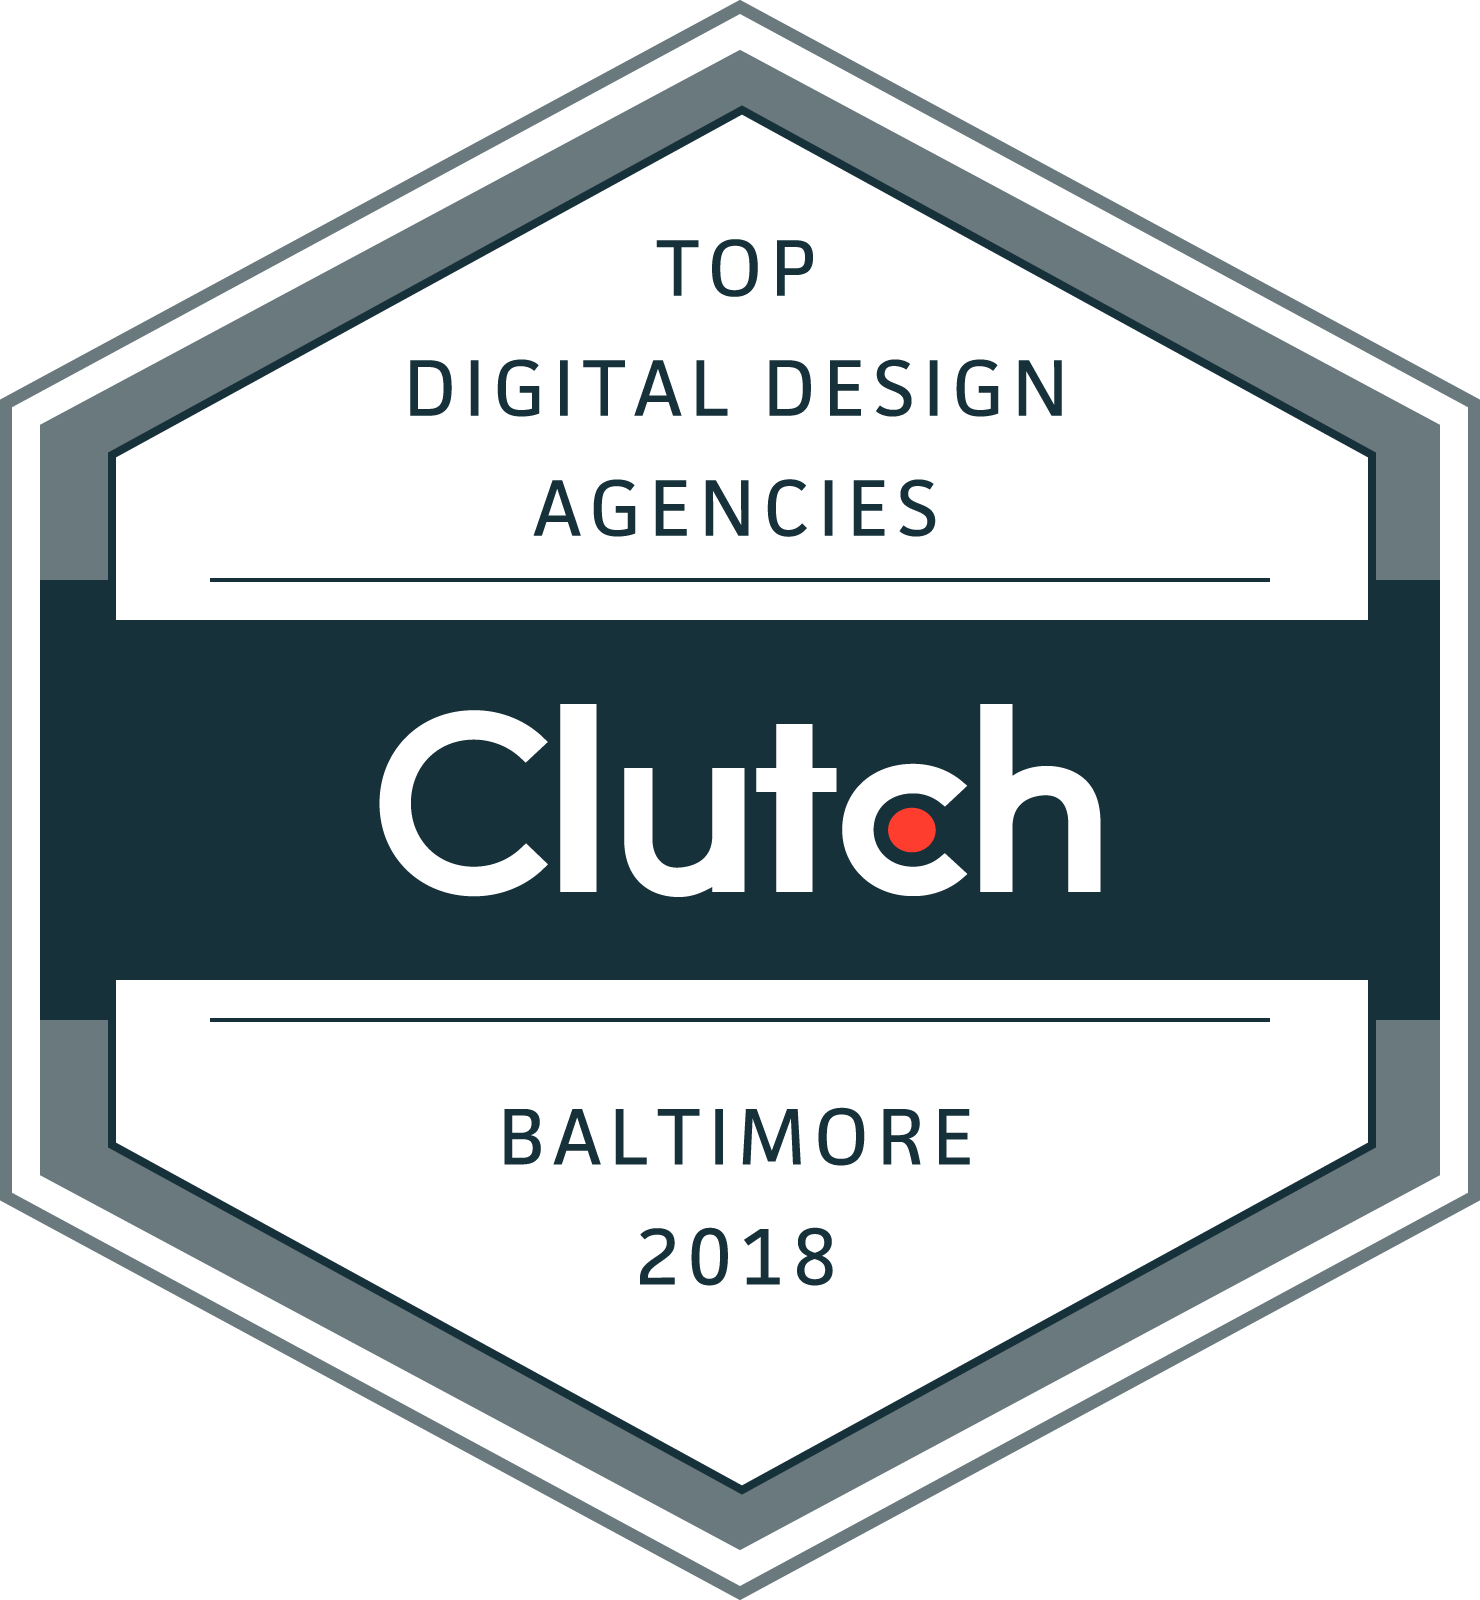 Clutch Digital Design Agency 2018